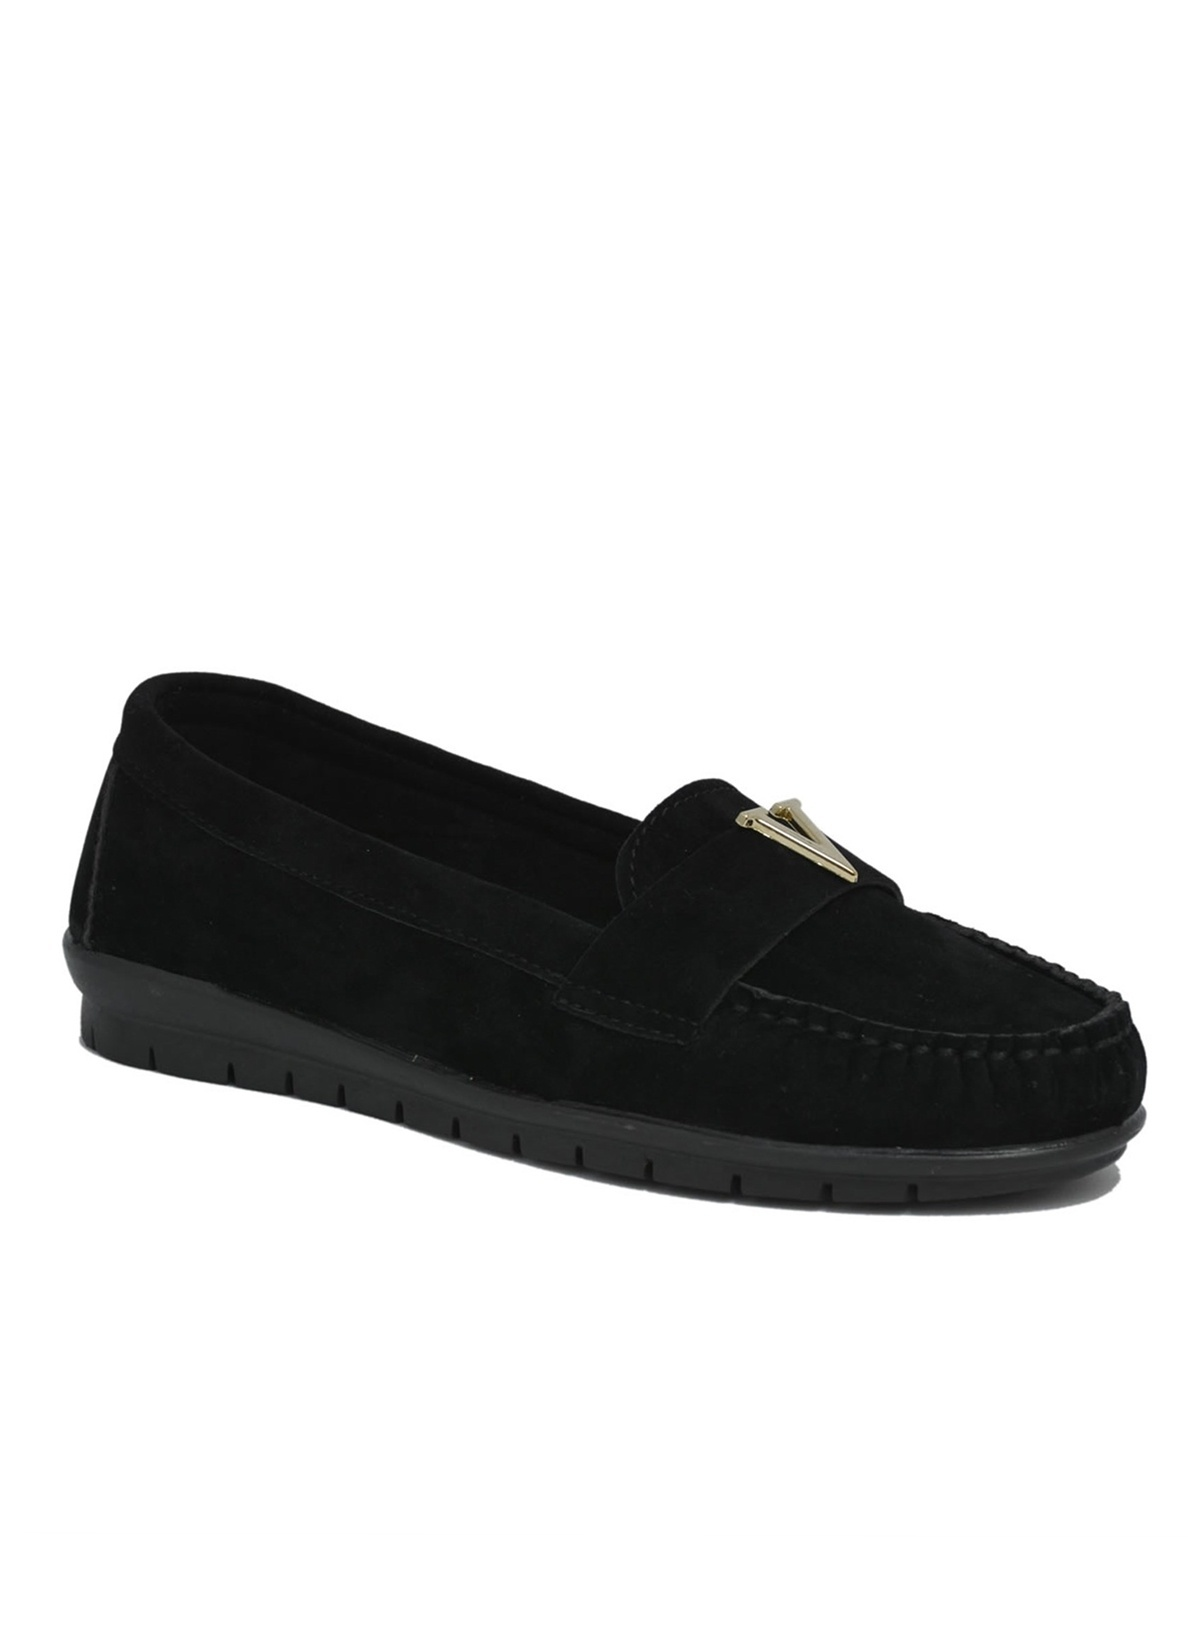 David Jones Ayakkabı 1551 Loafer – 69.99 TL